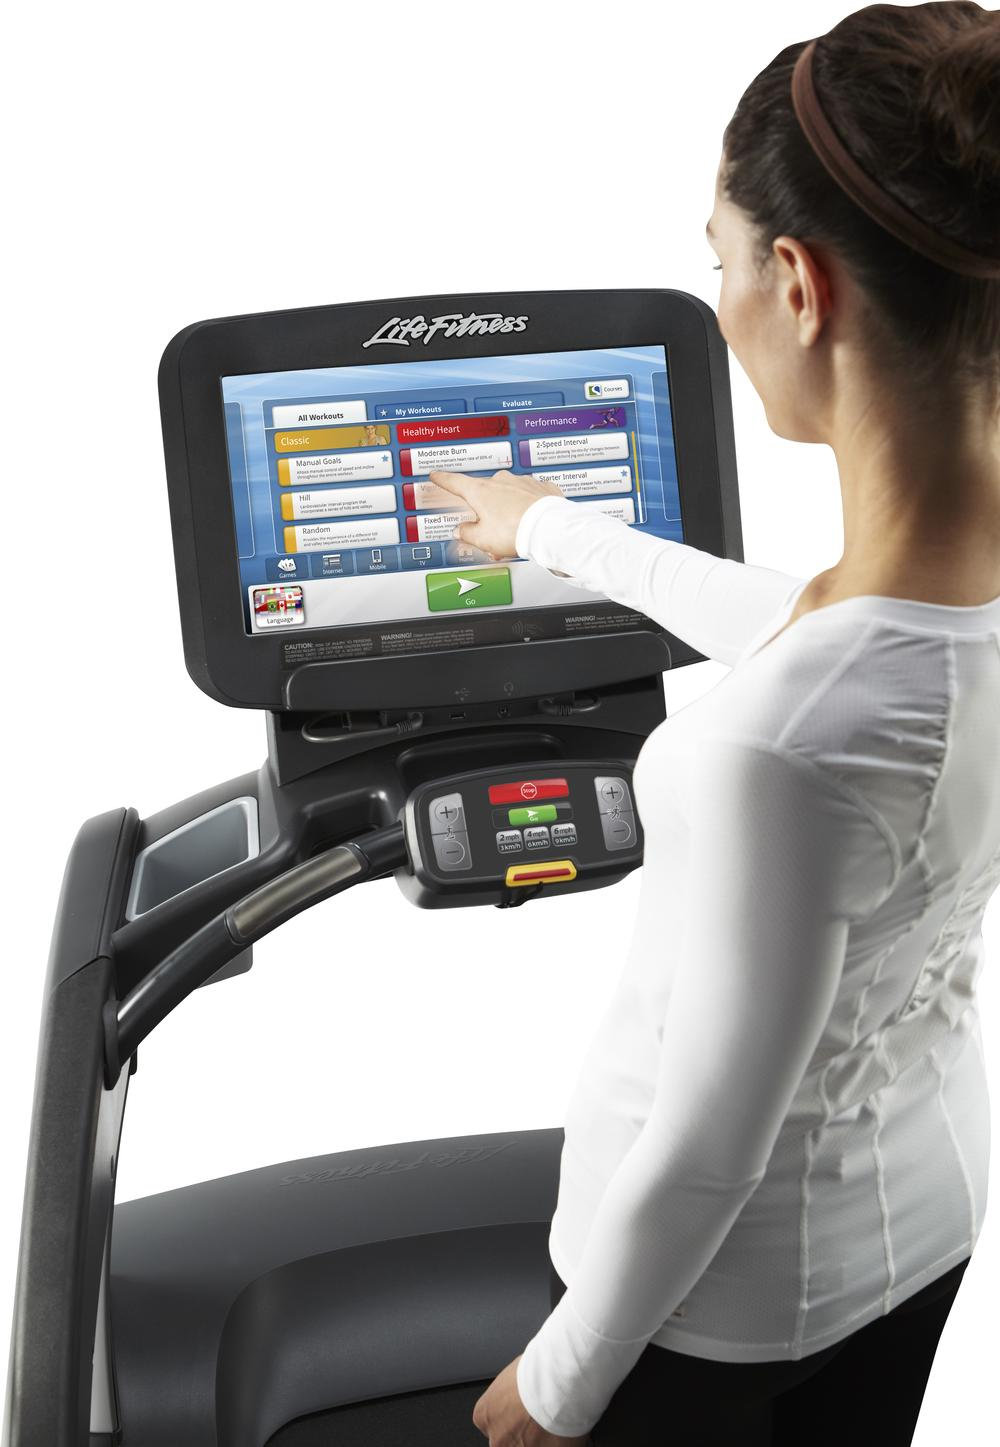 Third party companies can develop apps that link to the new tablet consoles on Life Fitness CV equipment